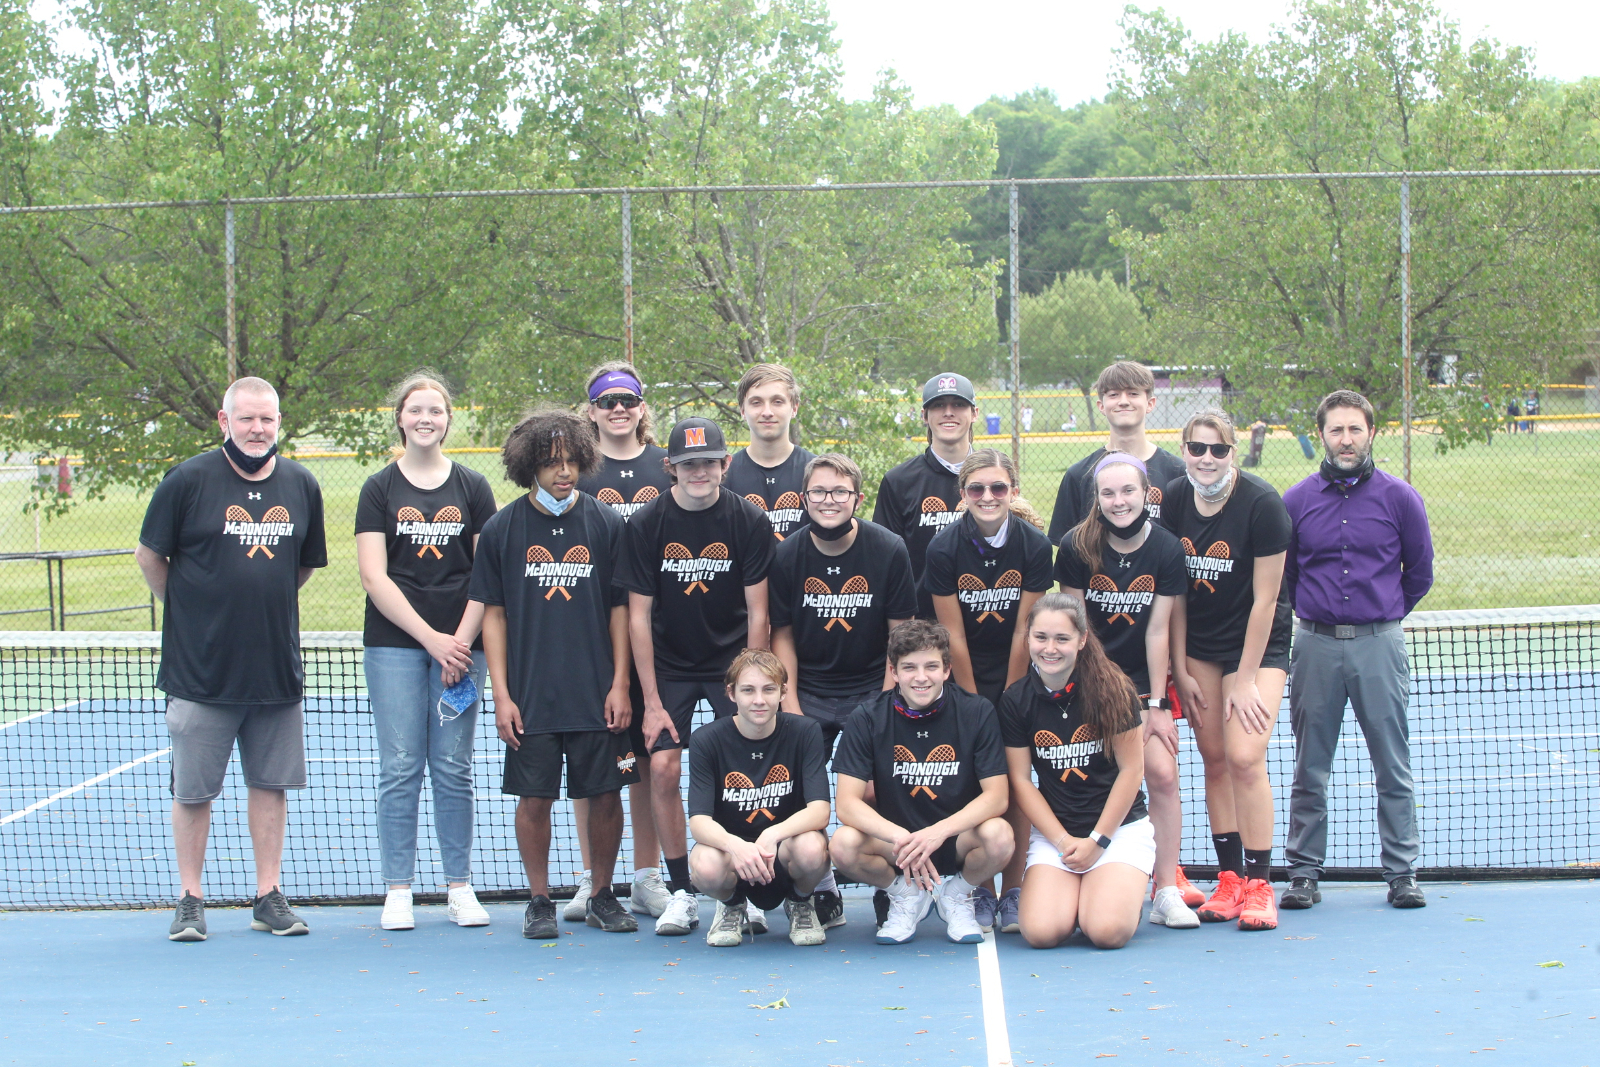 Tennis vs St Charles Senior Night